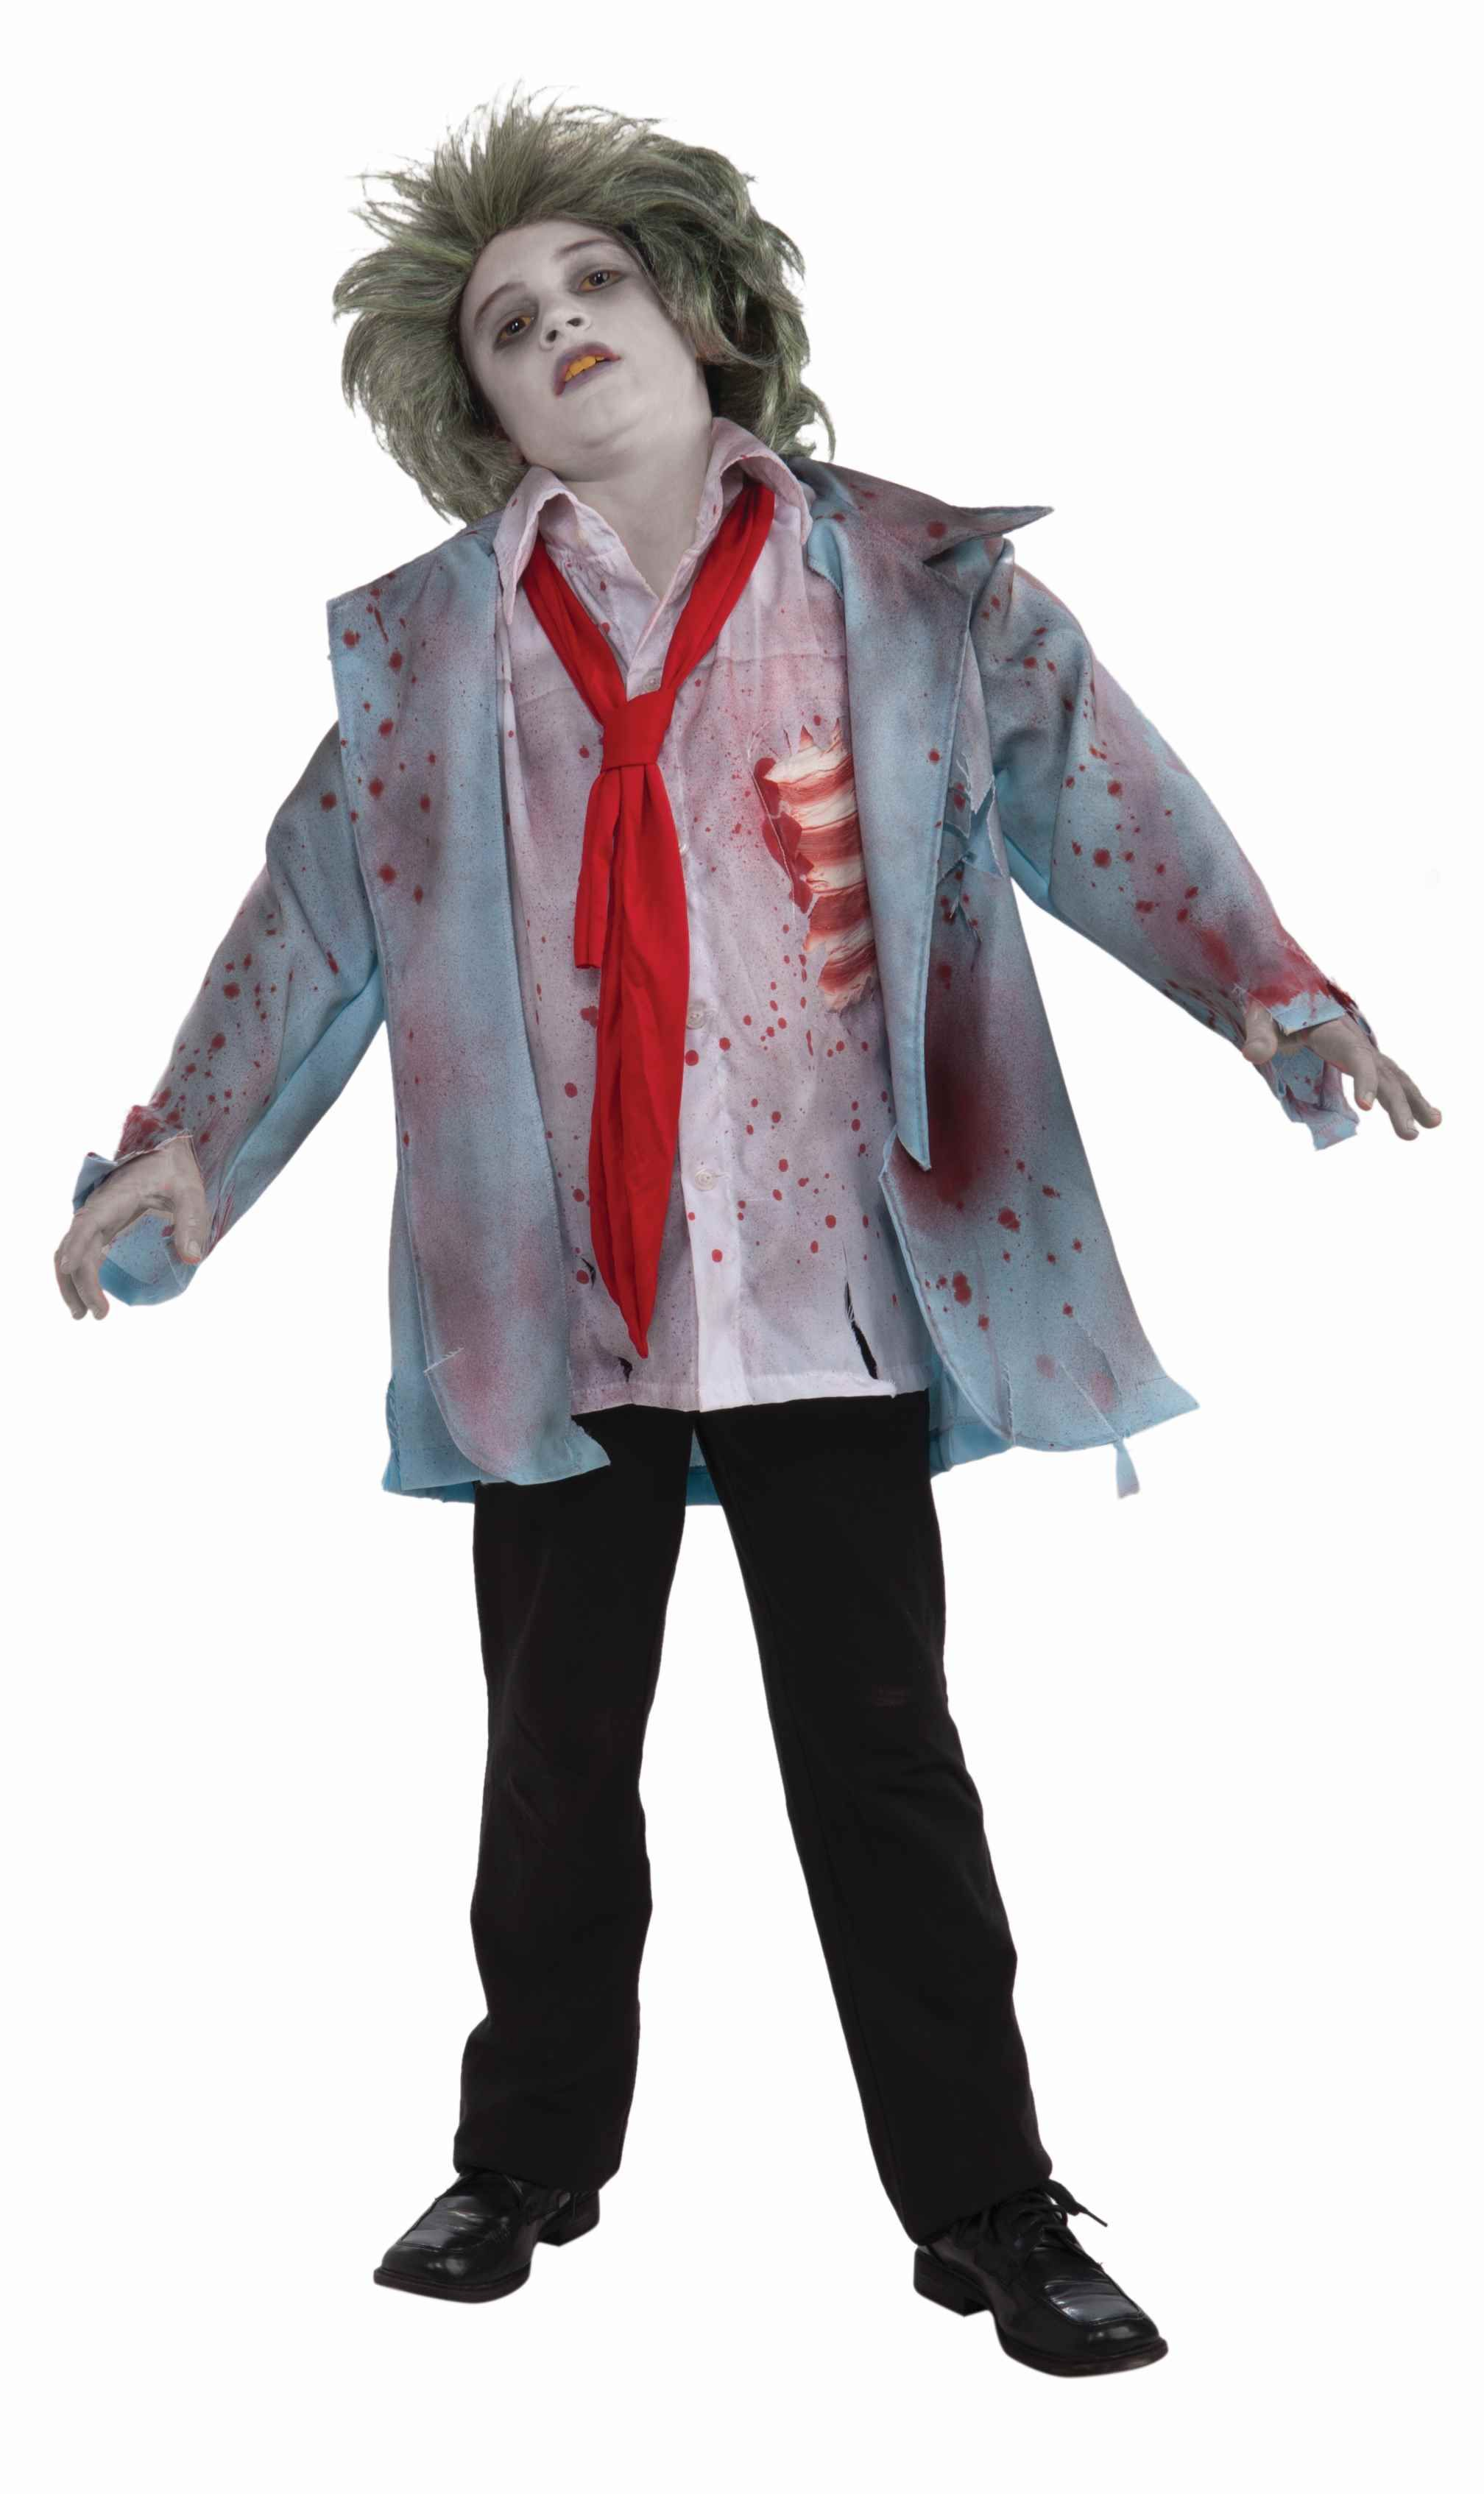 boys scary zombie halloween costume this is a scary halloween zombie man costume for kids this spooky costume comes with three pieces